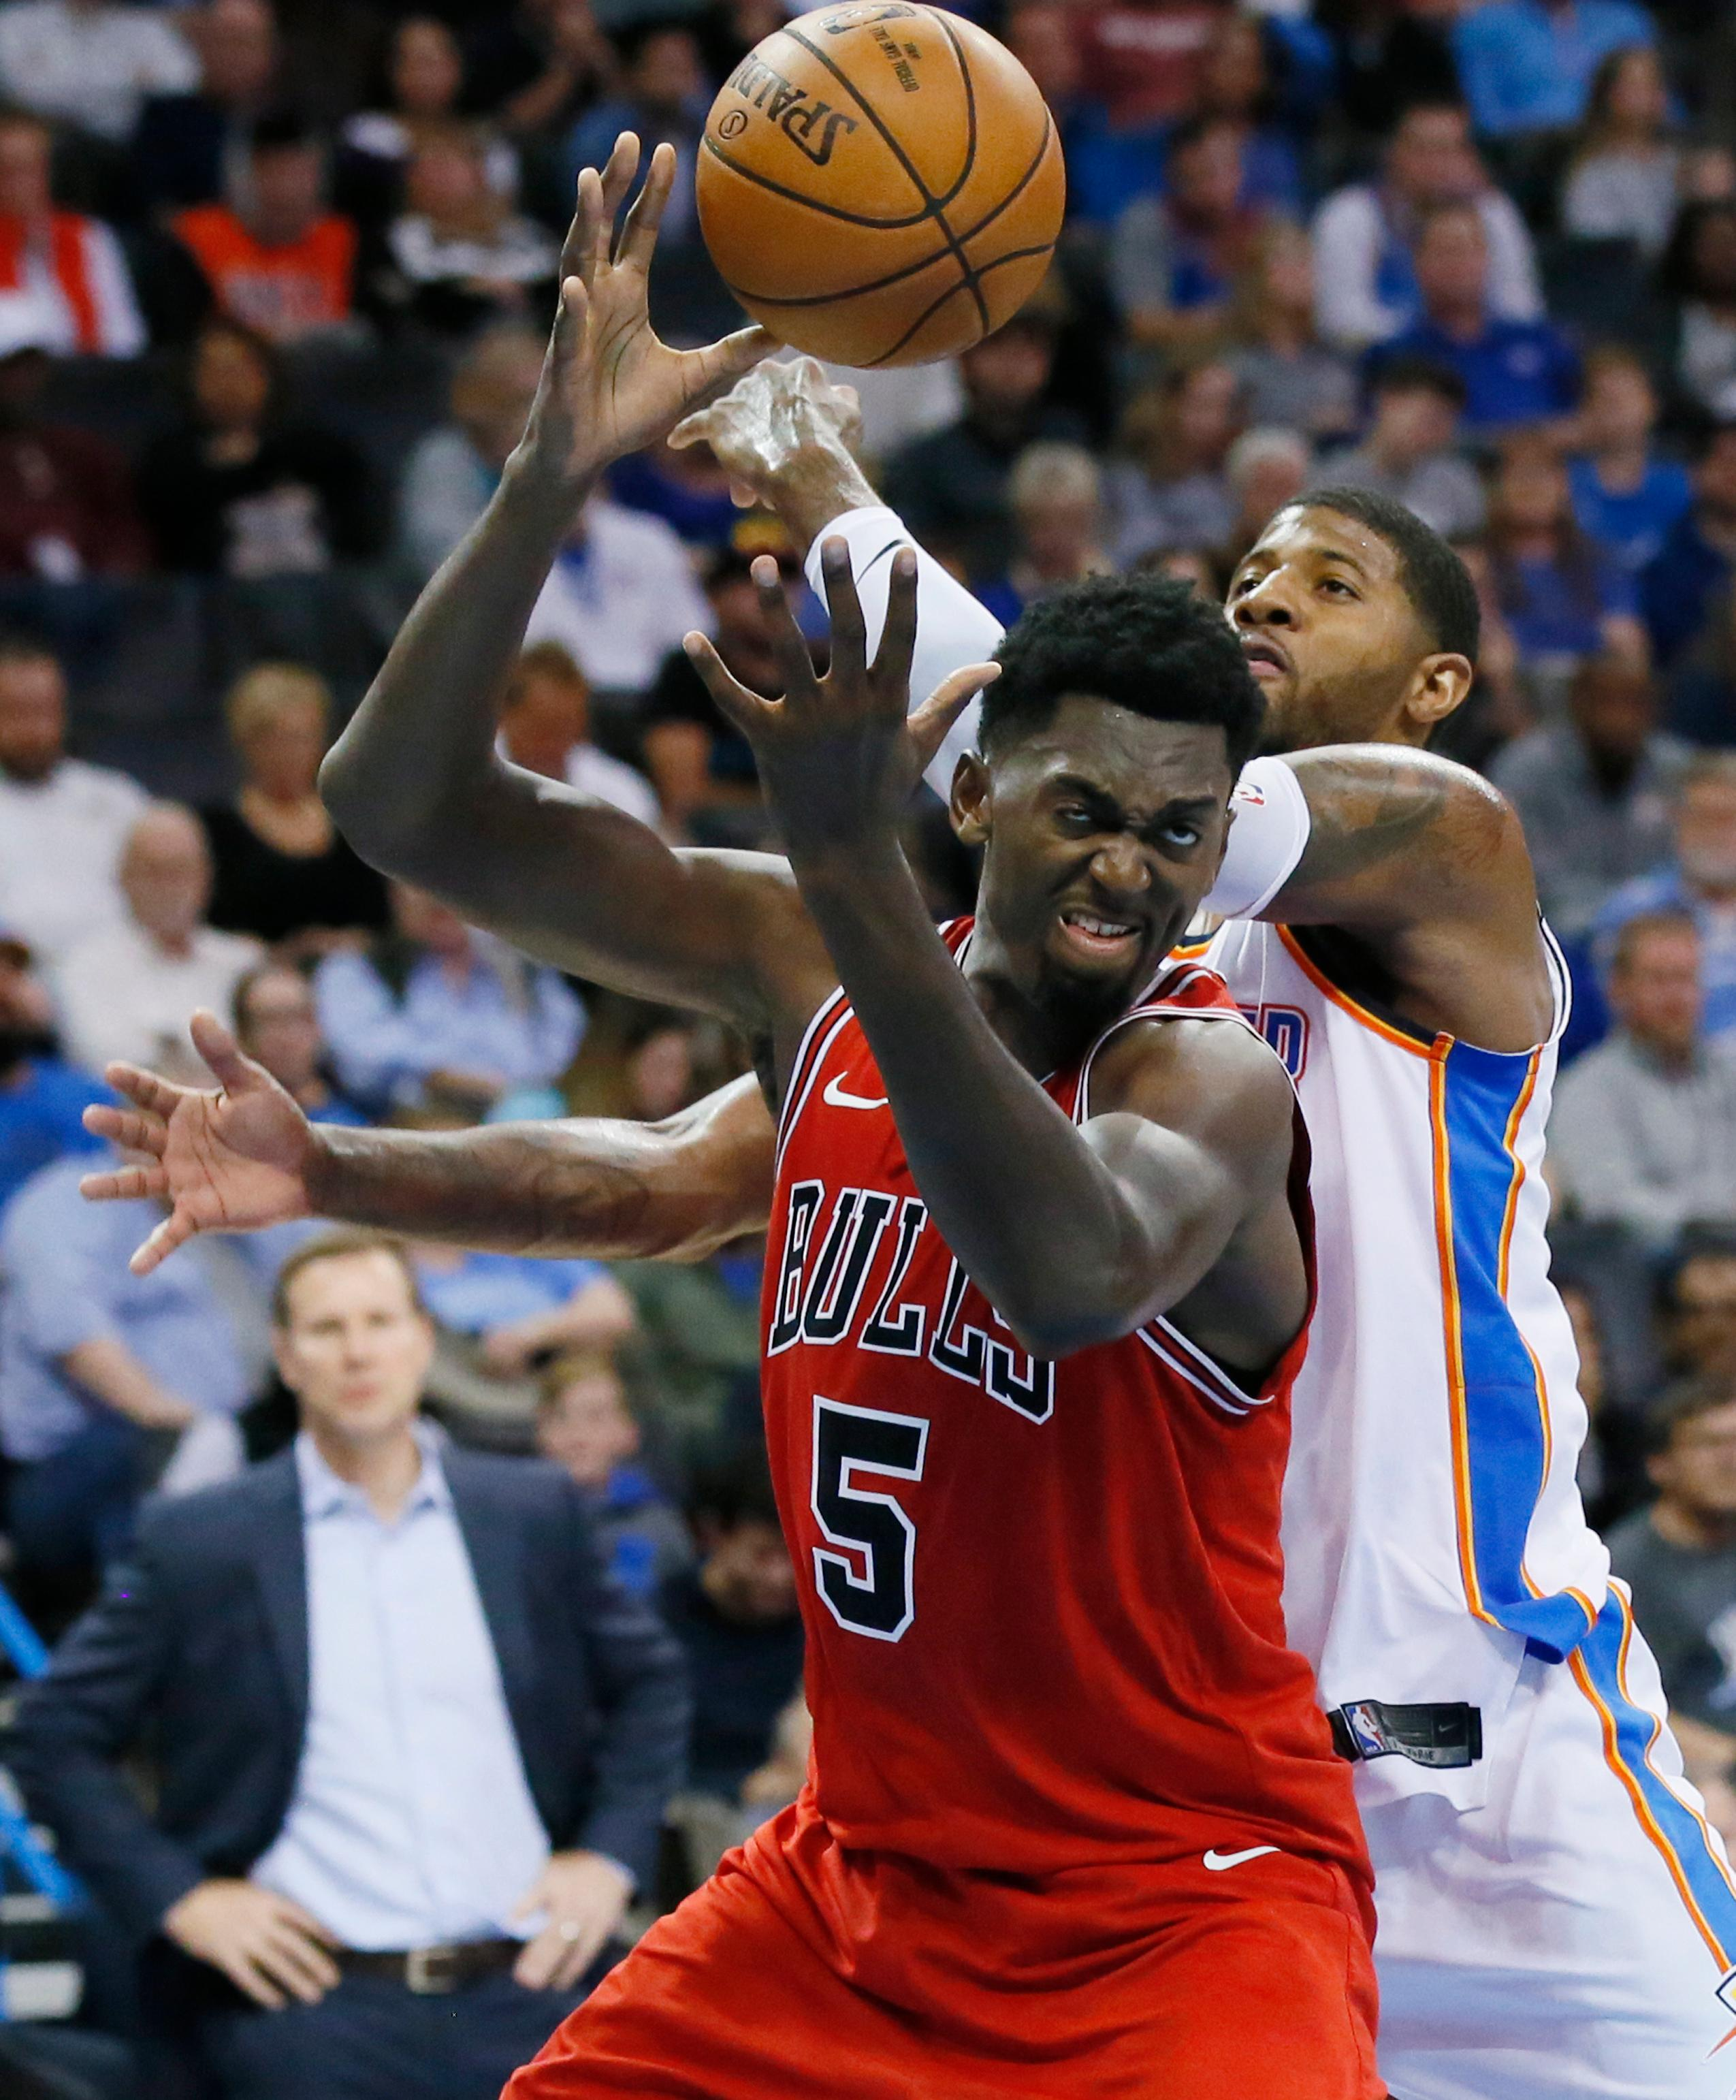 Chicago Bulls forward Bobby Portis (5) grabs a rebound in front of Oklahoma City Thunder forward Paul George, right, in the second quarter of an NBA basketball game in Oklahoma City, Wednesday, Nov. 15, 2017. (AP Photo/Sue Ogrocki)